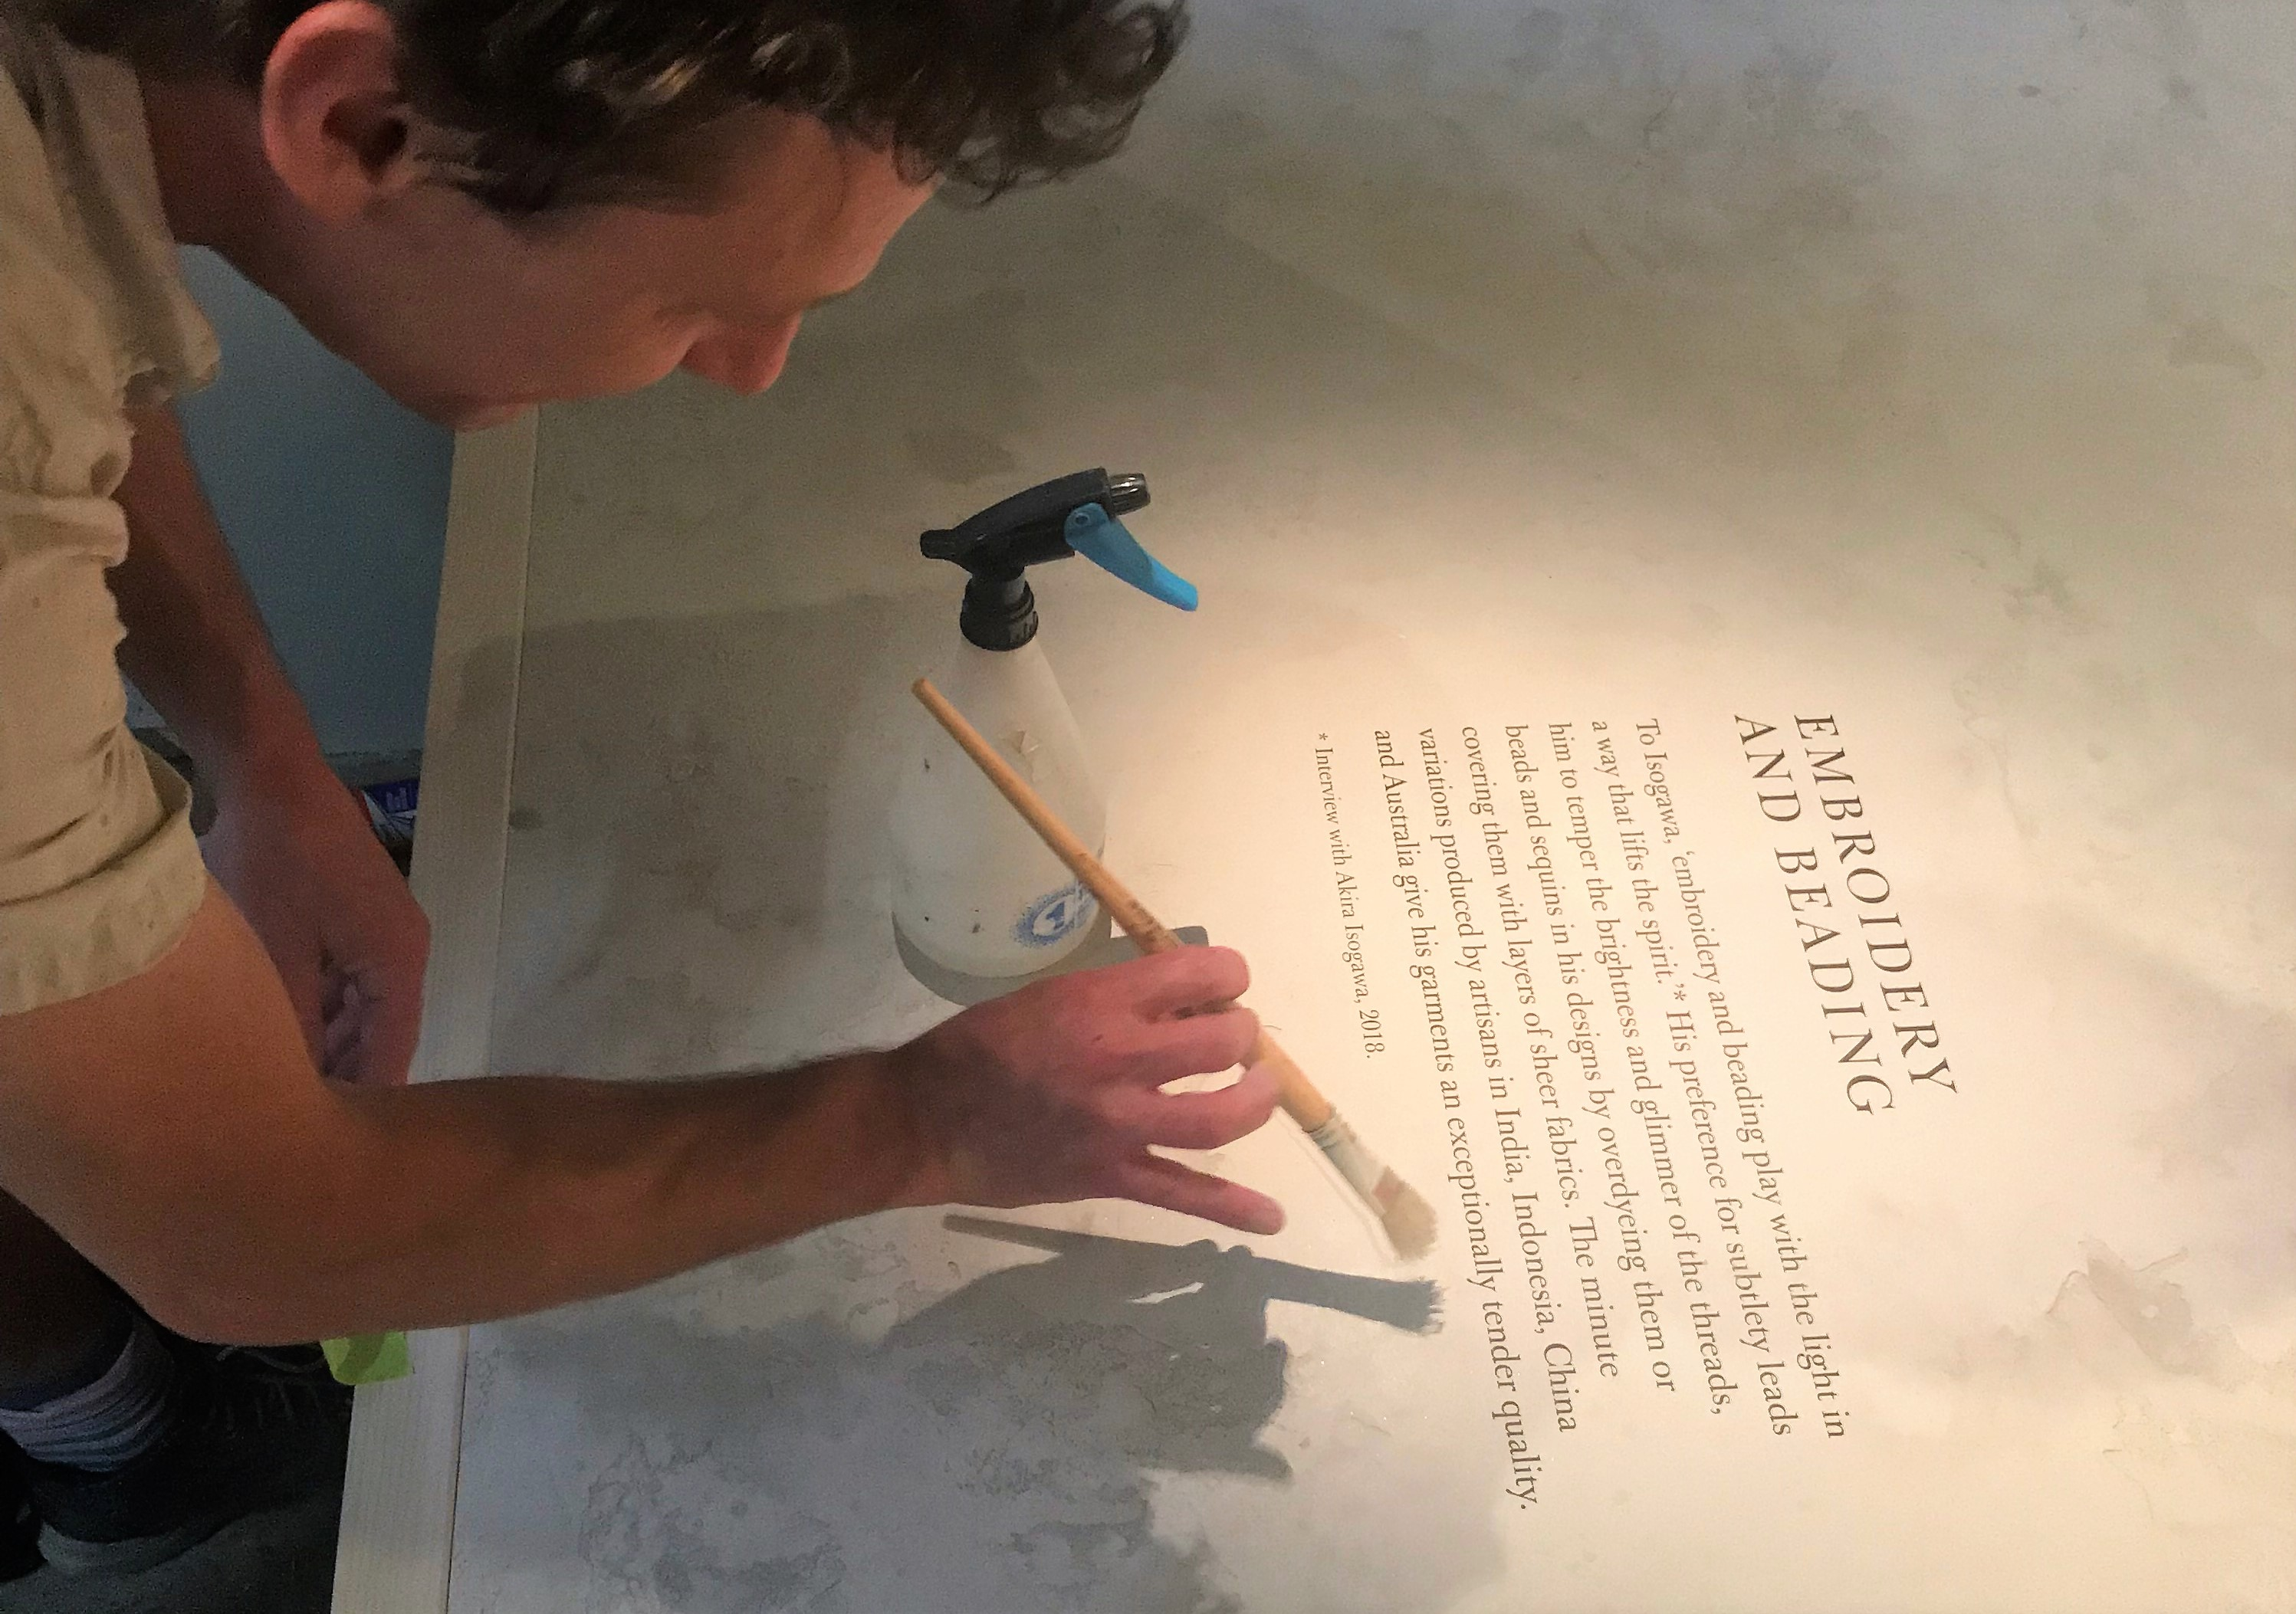 A man with a paintbrush poised over a plasterwork plinth. Written on the plinth is exhibition text with the heading 'embroidering and beading'. There is a spray bottle next to the man's hand.